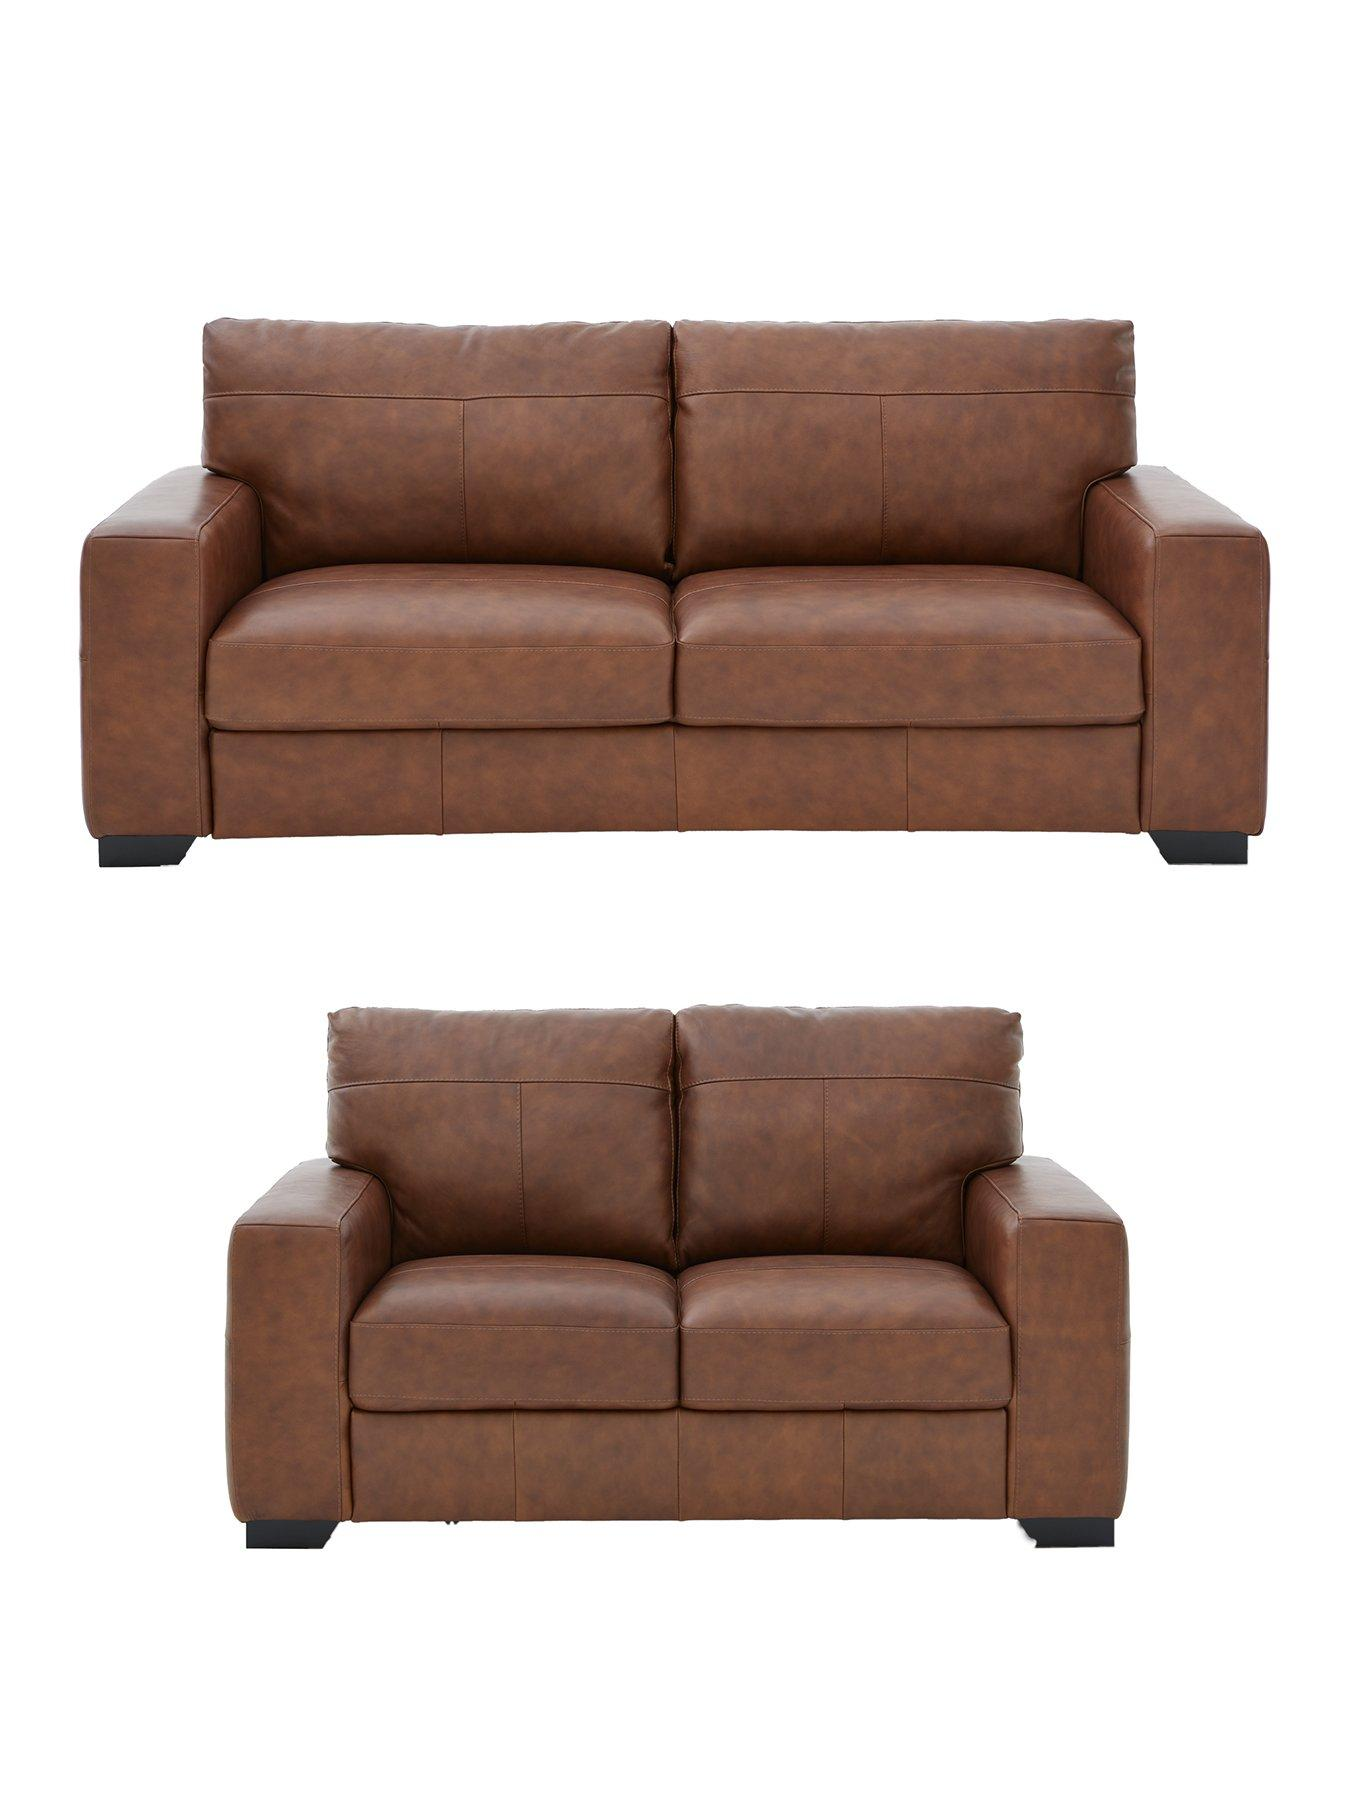 italy leather sofa uk contemporary light grey hampshire 3 seater 2 italian set buy and save very co